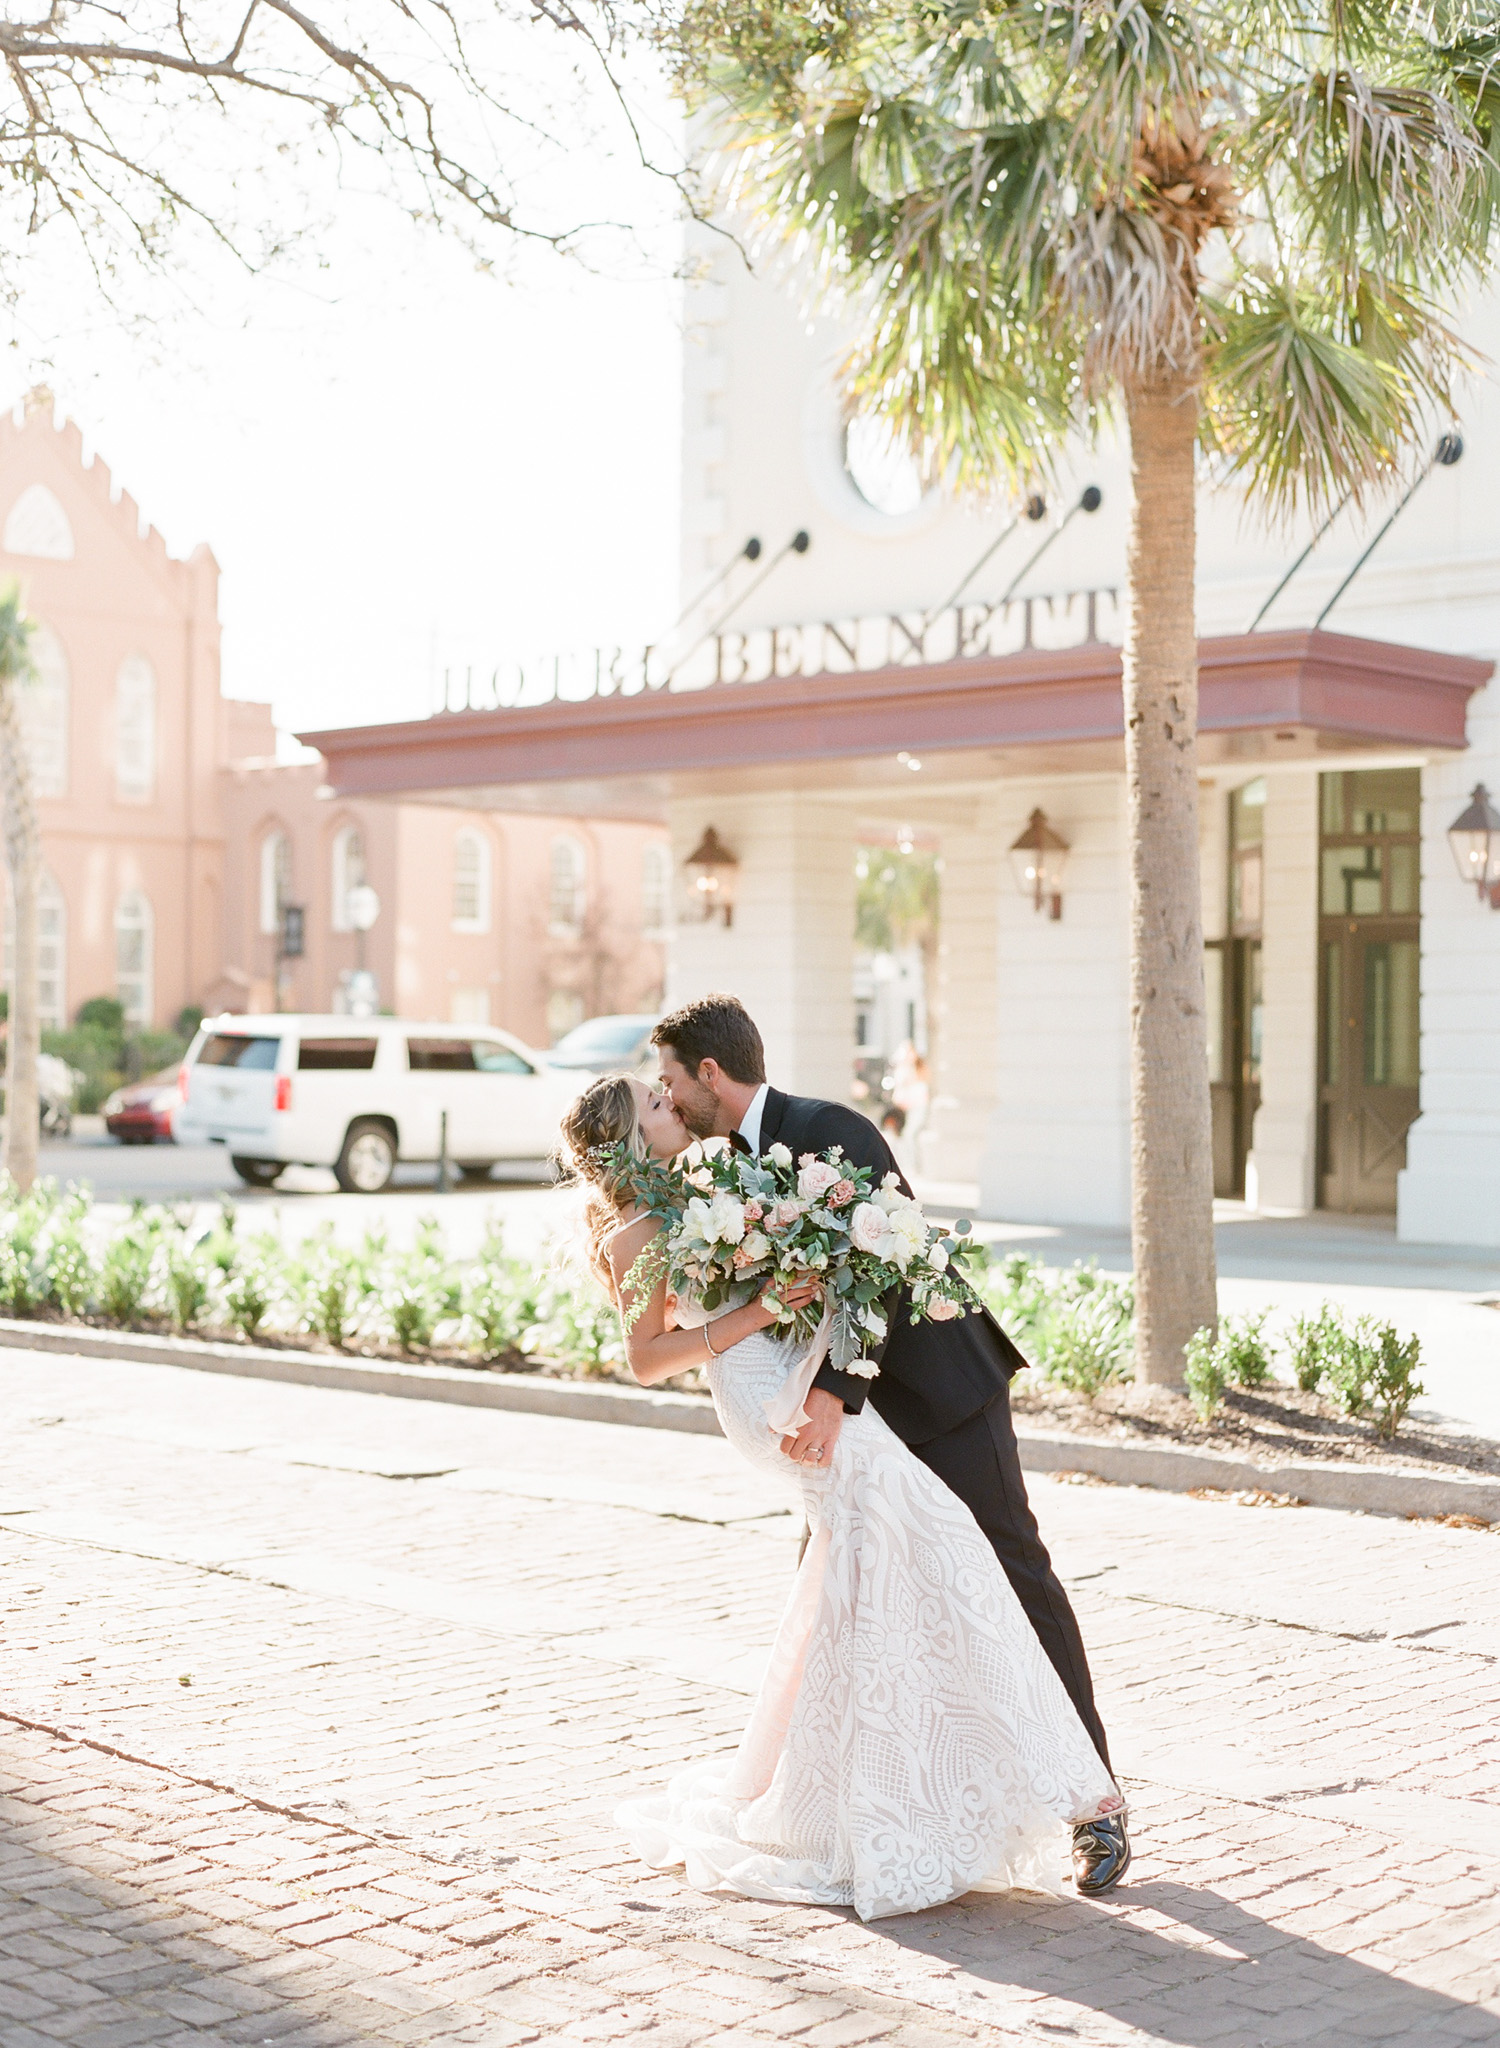 Charleston-Wedding-Hotel-Bennett-78.jpg